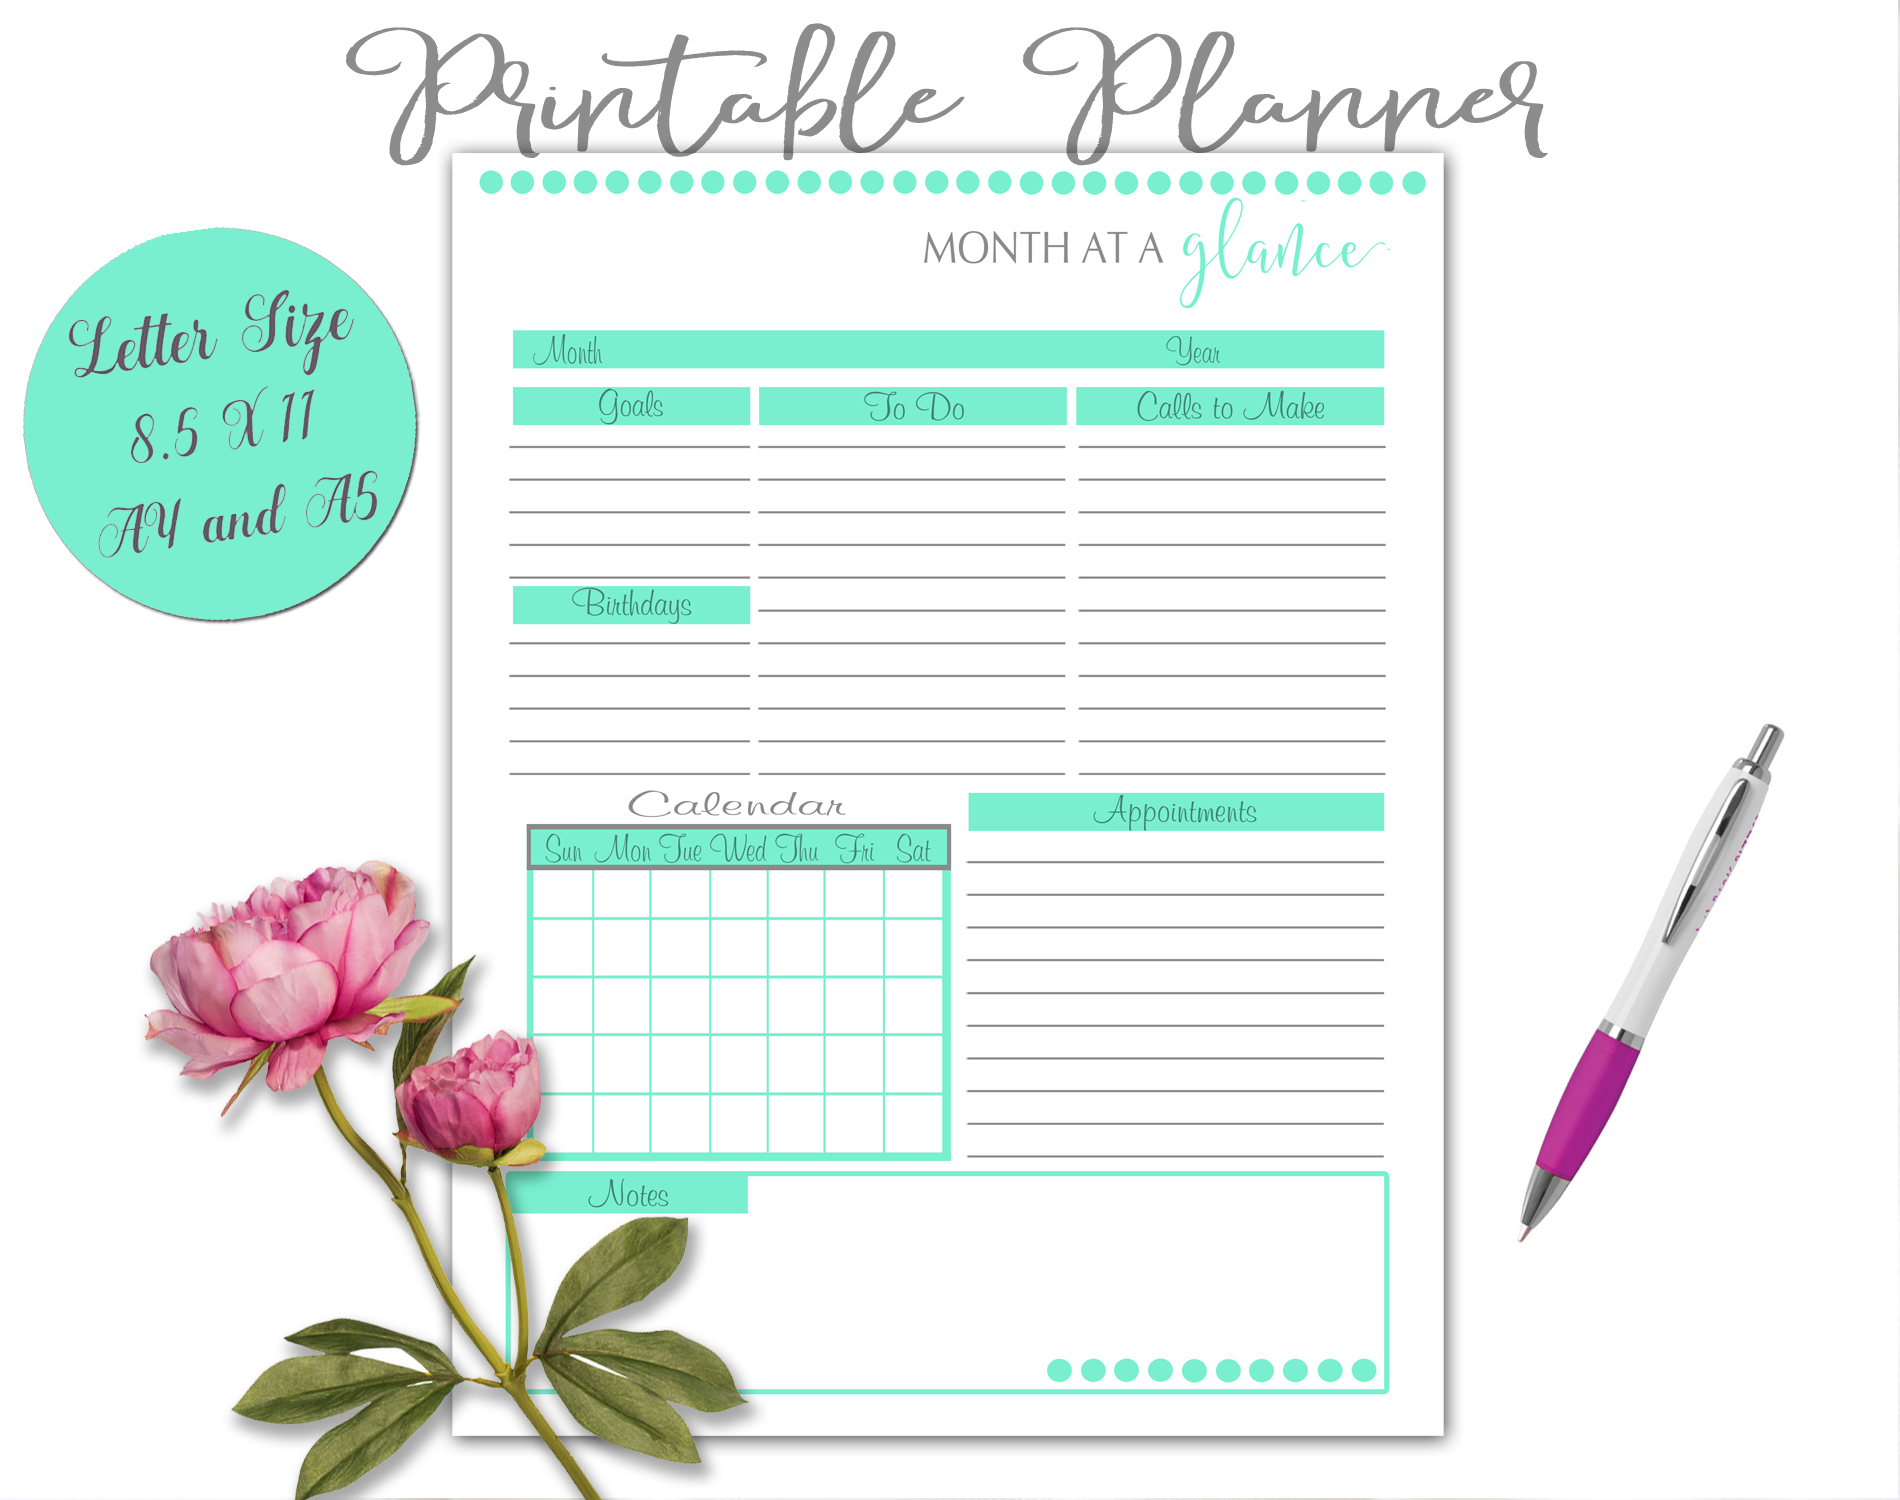 Printable Daily Weekly Monthly Planner Sheets example image 9